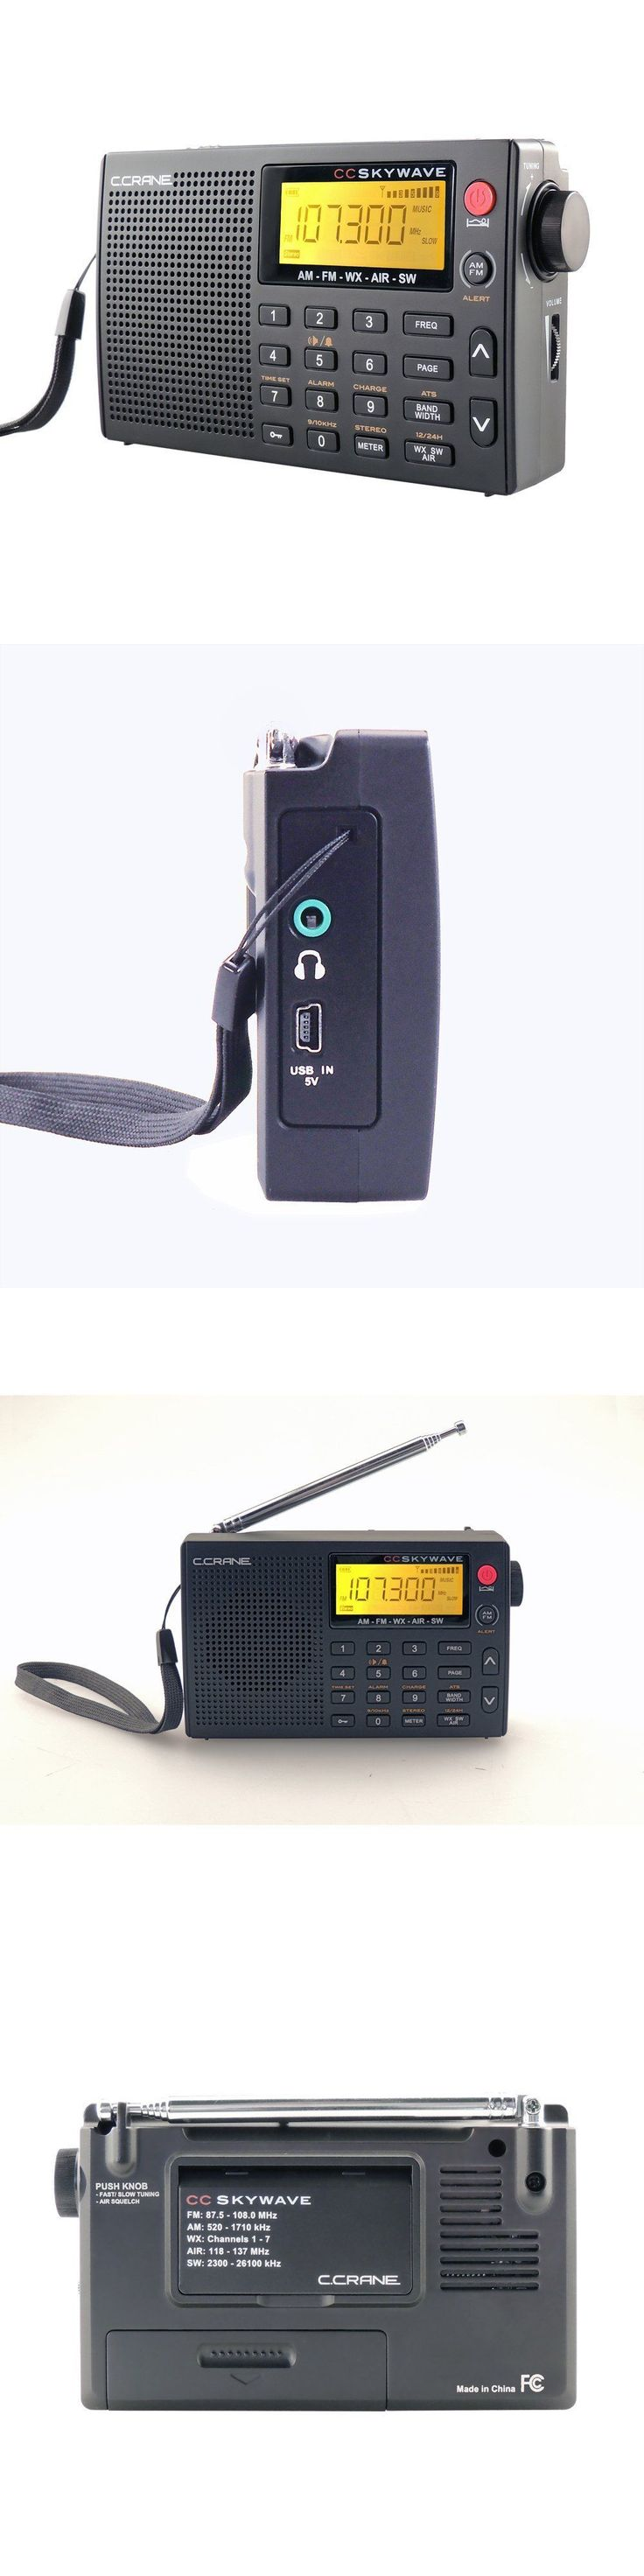 Portable AM FM Radios: C Crane Skywave World Radio With Cc Buds And Carry Case #Skwv Free Shipping BUY IT NOW ONLY: $89.99